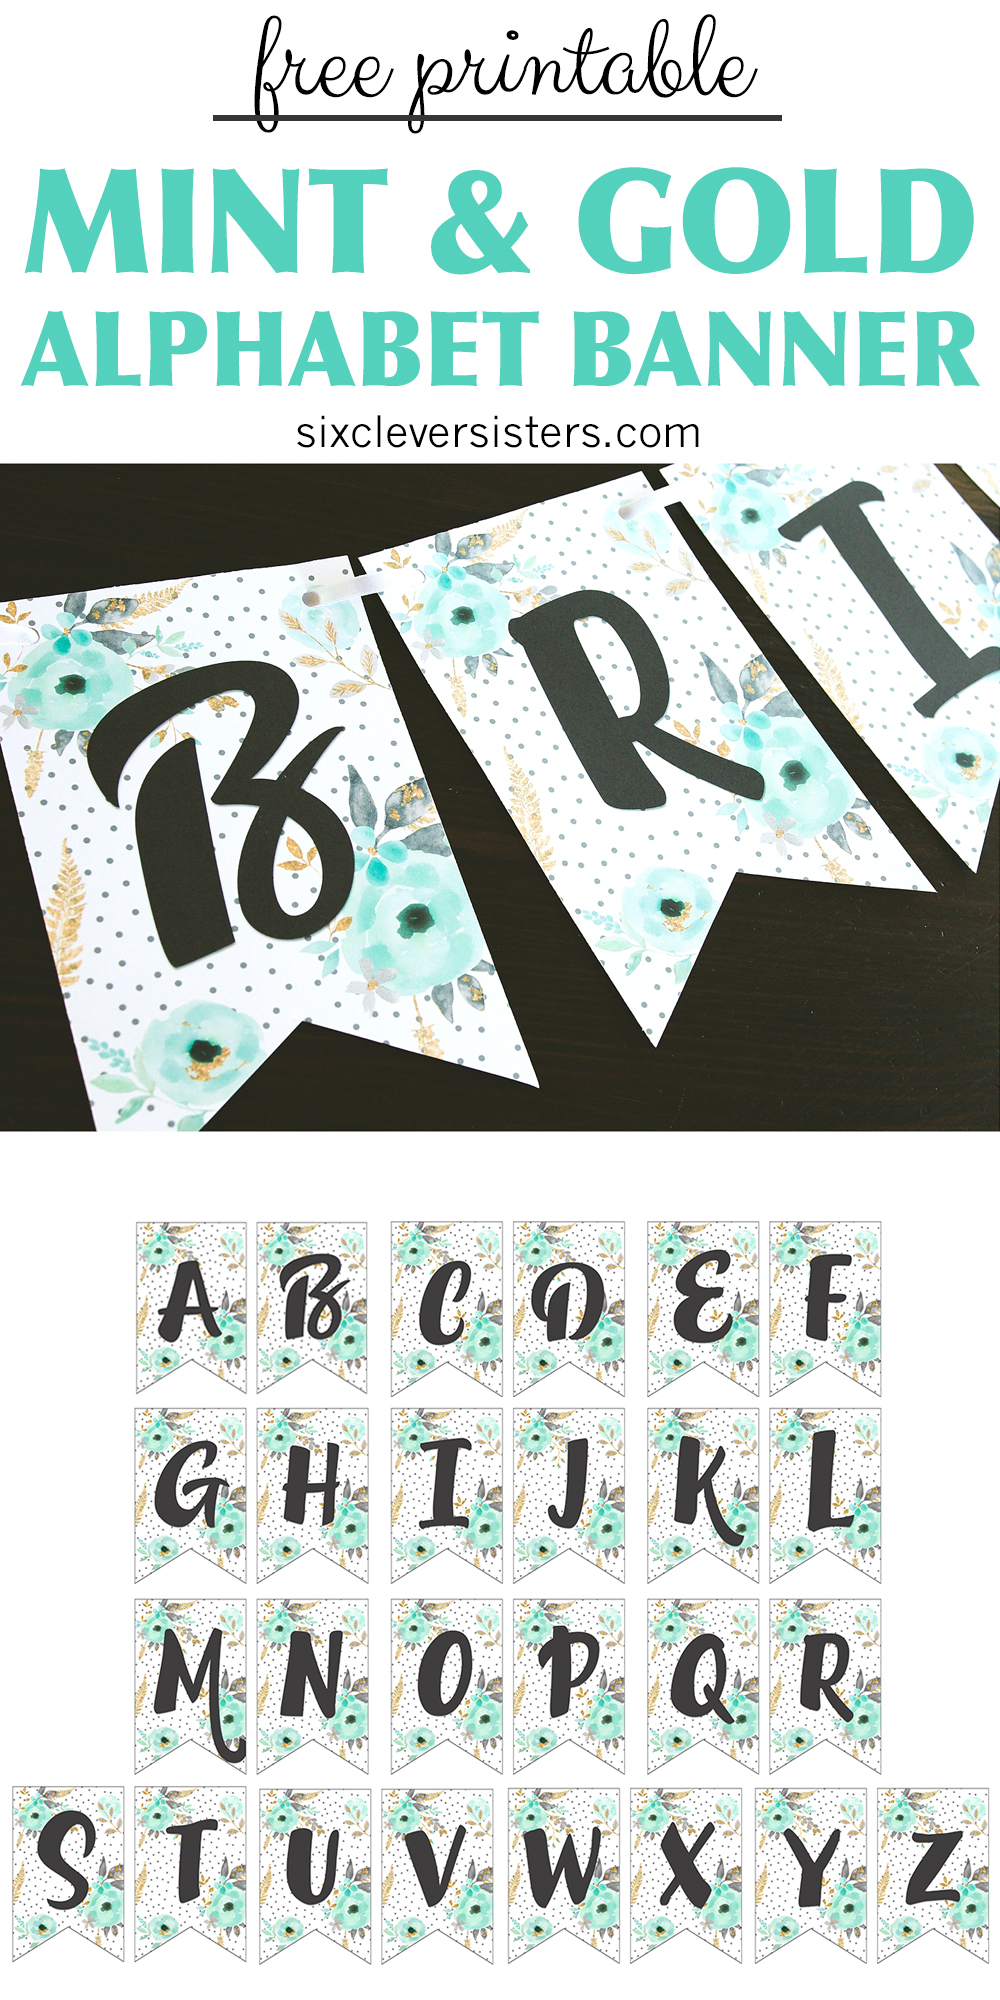 photo about Printable Letter Banners known as Totally free Printable Alphabet Banner MINT GOLD - 6 Intelligent Sisters